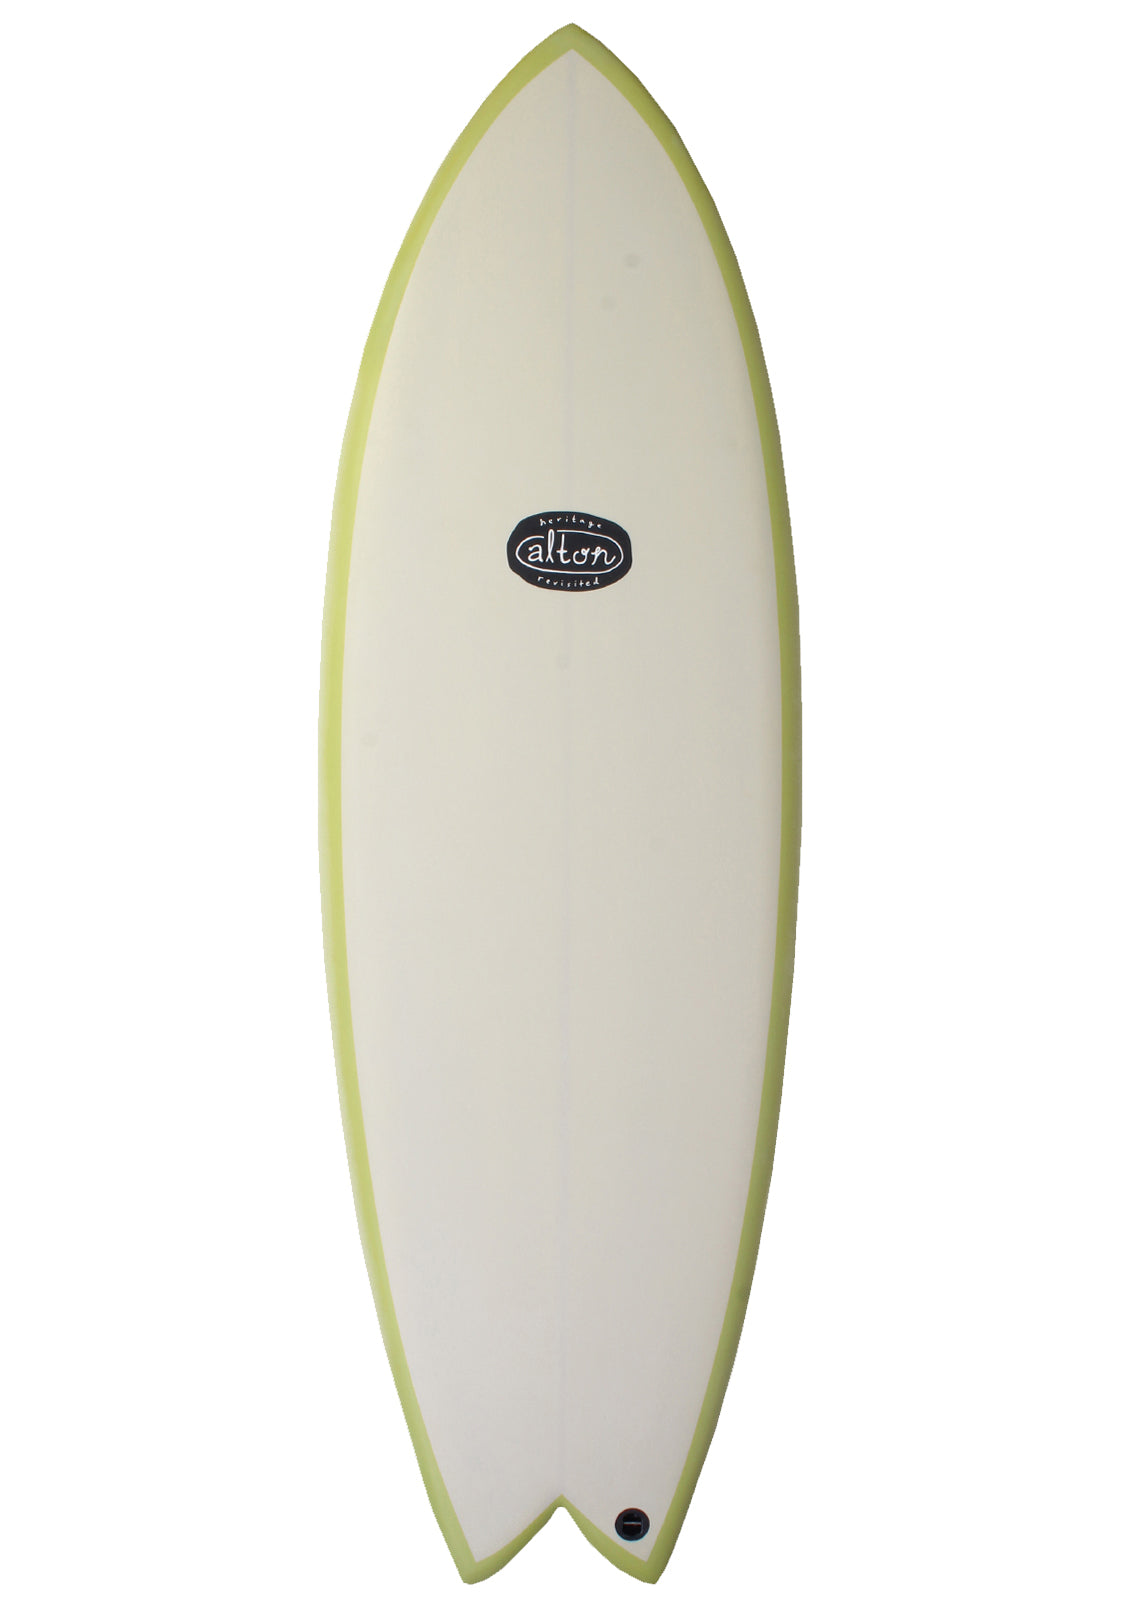 Alton Highliner Surfboard 5'4